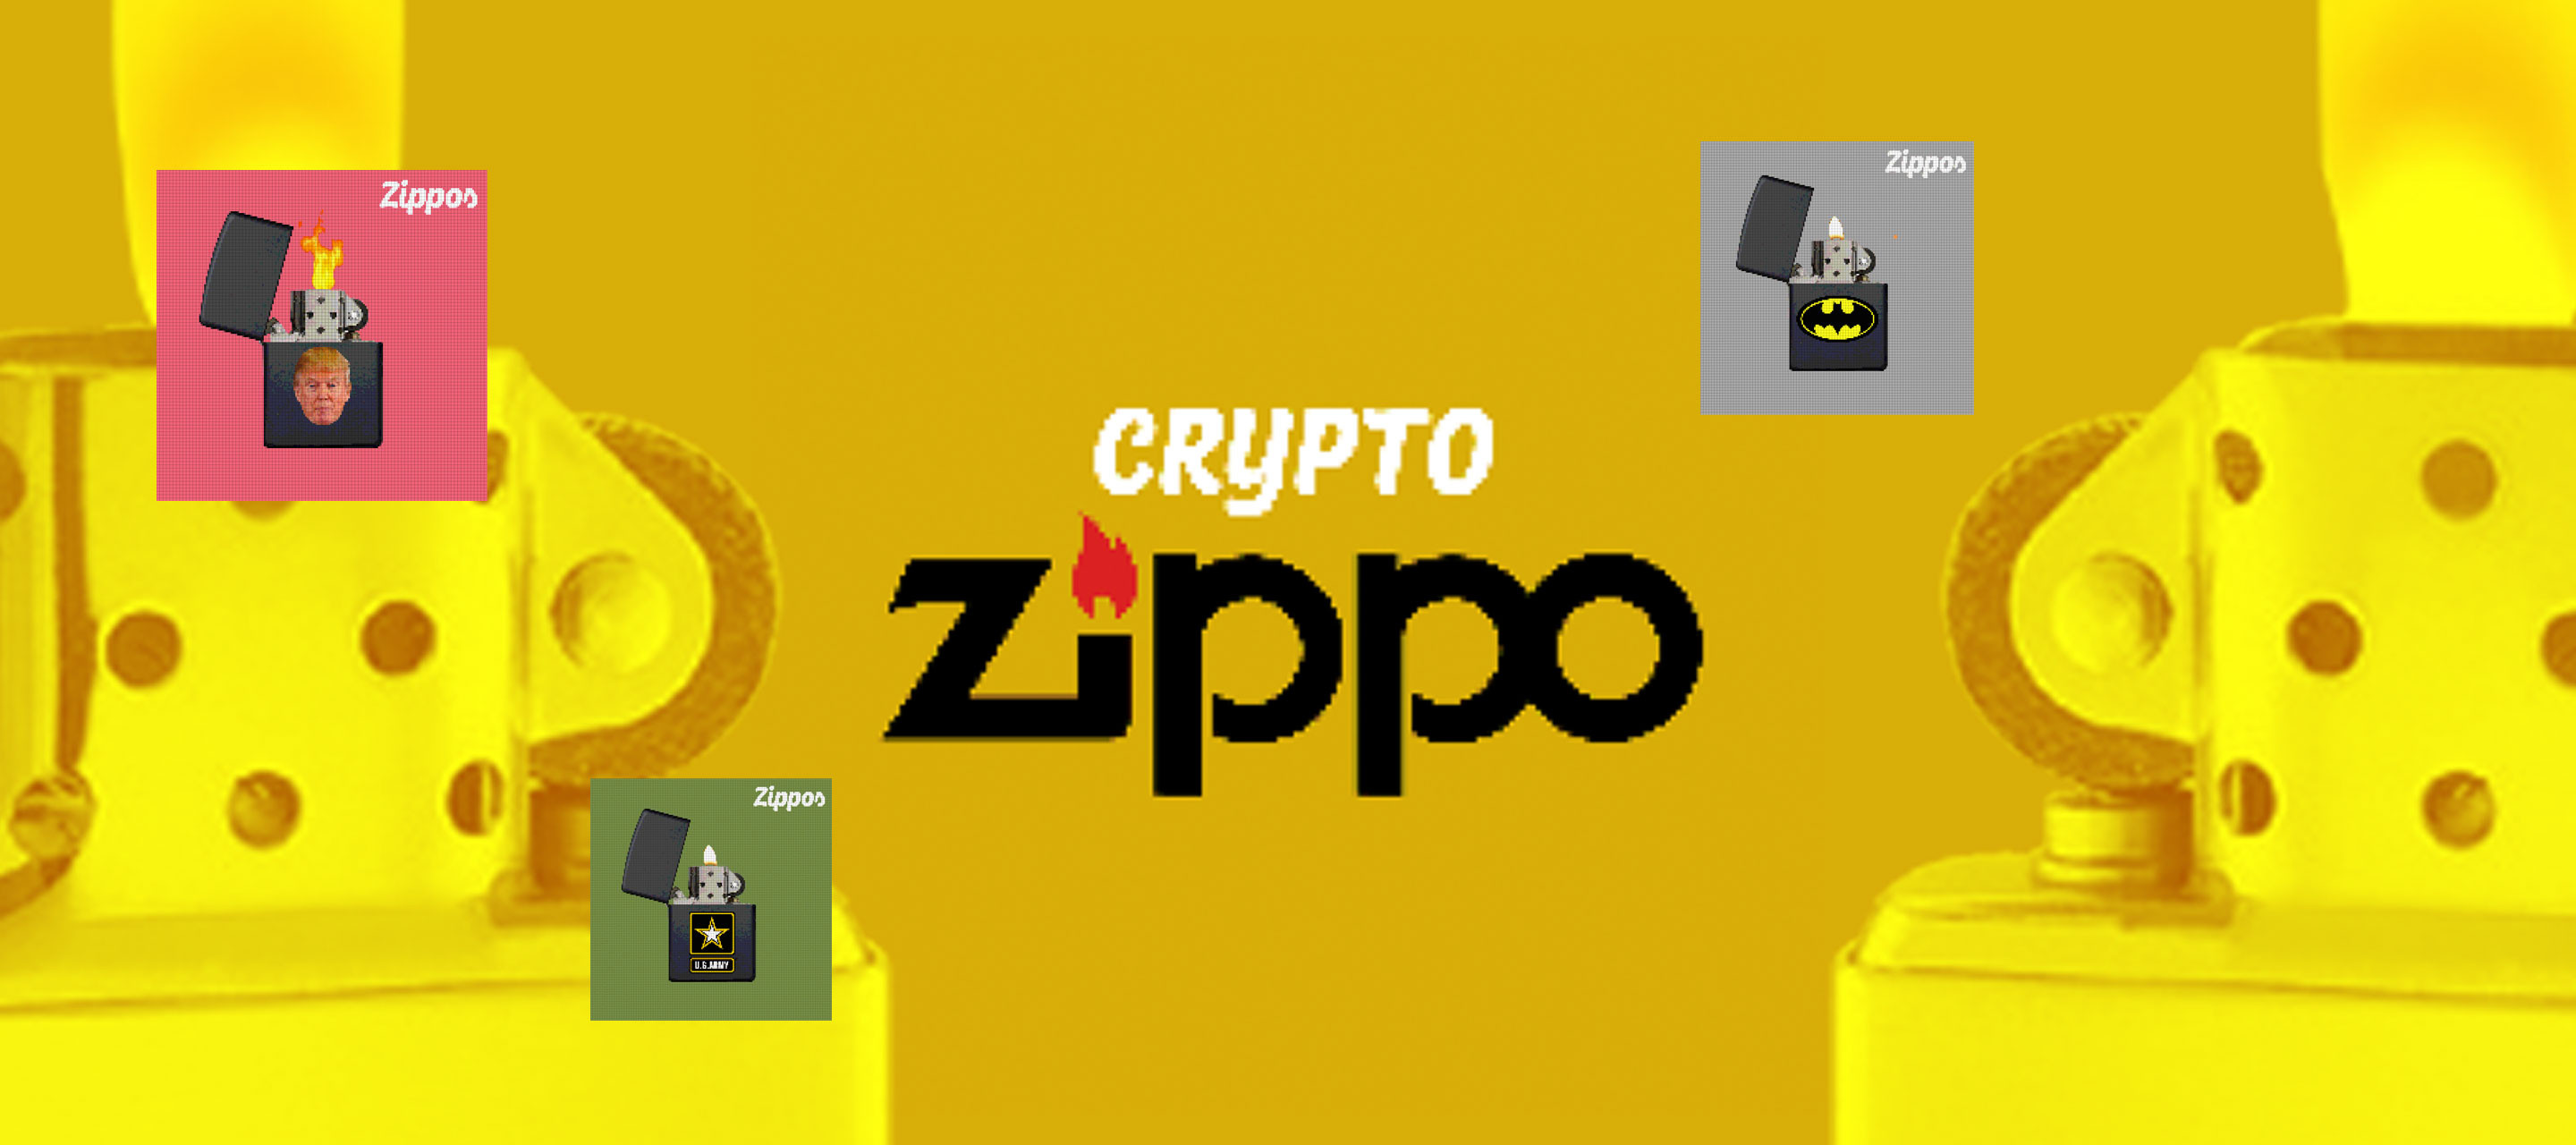 This collection is lit! Zippo is the cult brand for fans of high-quality lighters. This small and rare collection created one pixel at the time it's an homage to this great brand!  https://opensea.io/collection/cryptozippos/